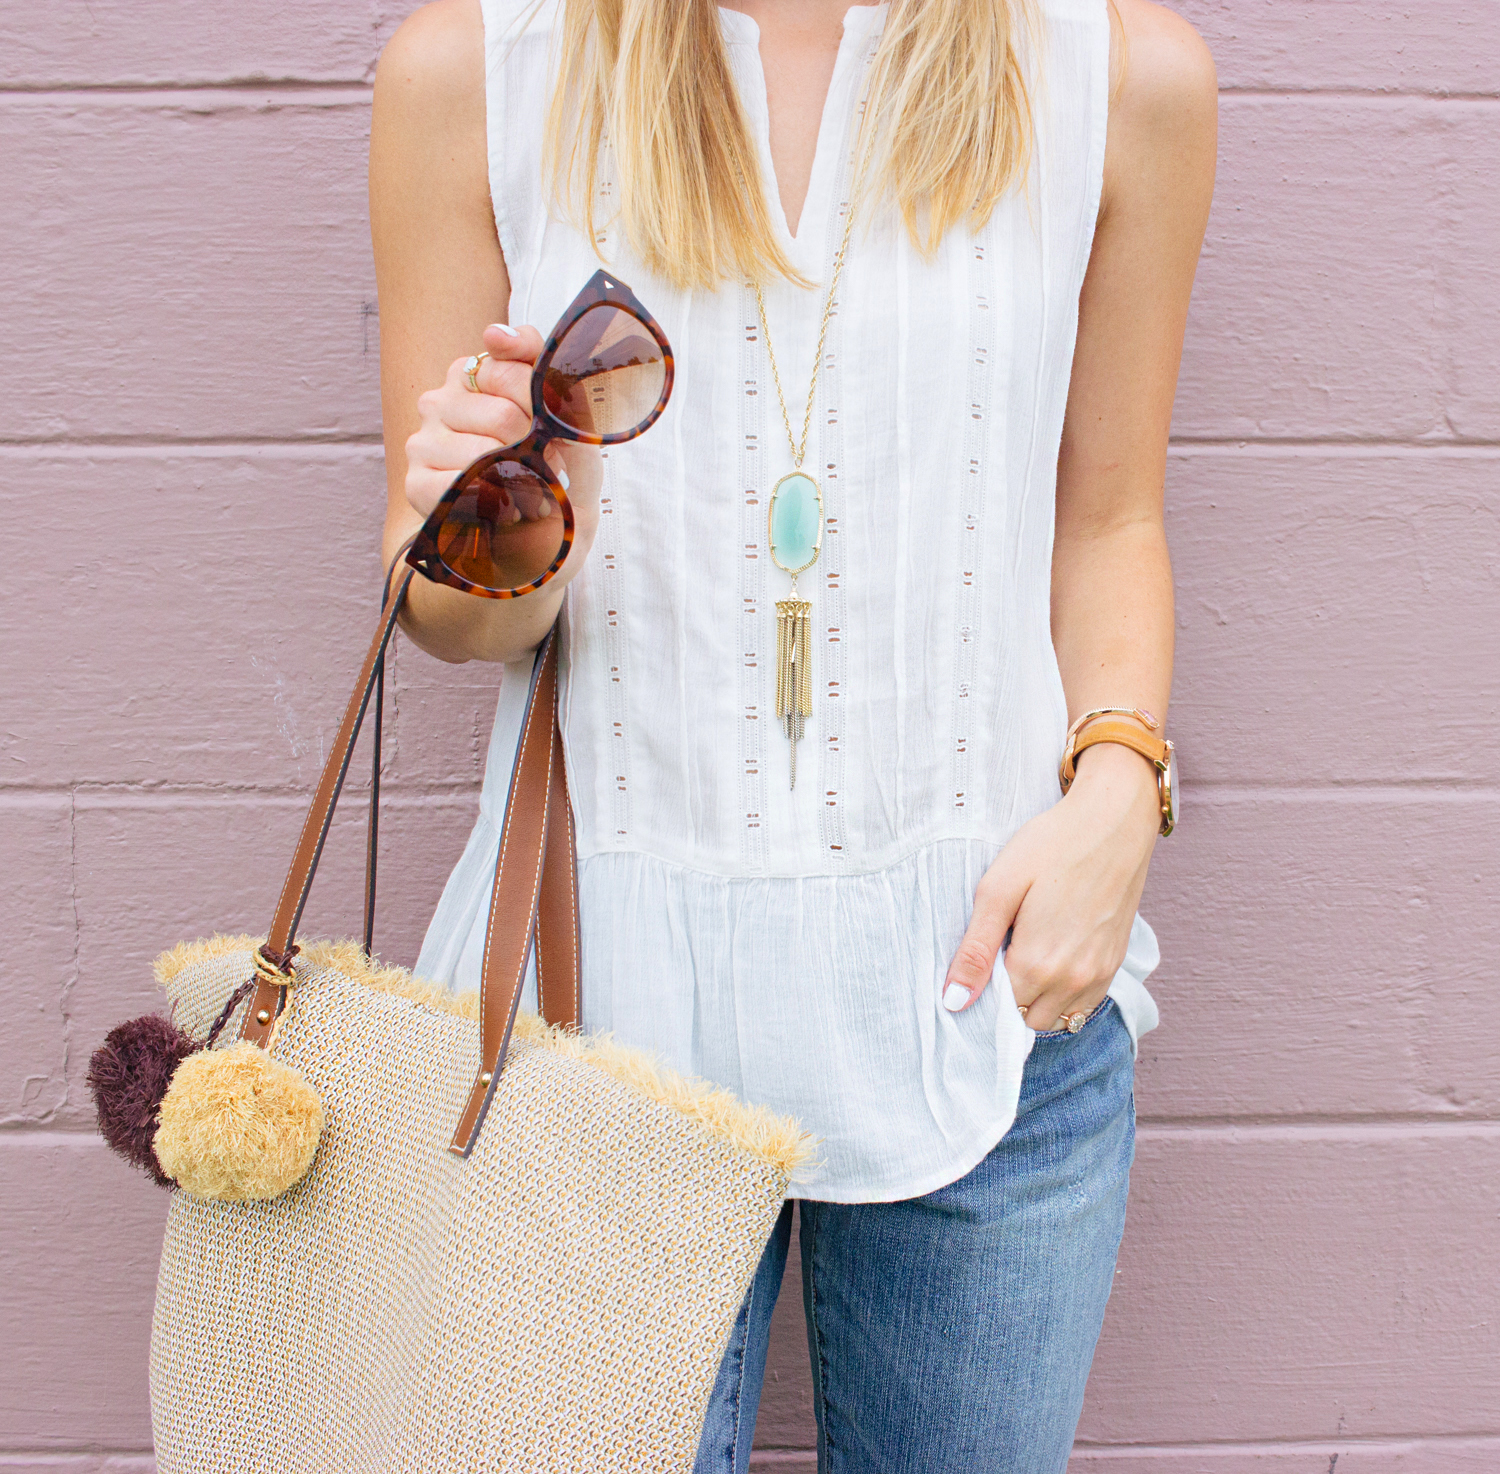 livvyland-blog-olivia-watson-caslon-nordstrom-boyfriend-jeans-white-eyelet-drop-waist-tank-top-beach-bag-tote-kendra-scott-rayne-necklace-prada-cateye-sunglasses-austin-texas-fashion-blogger-6